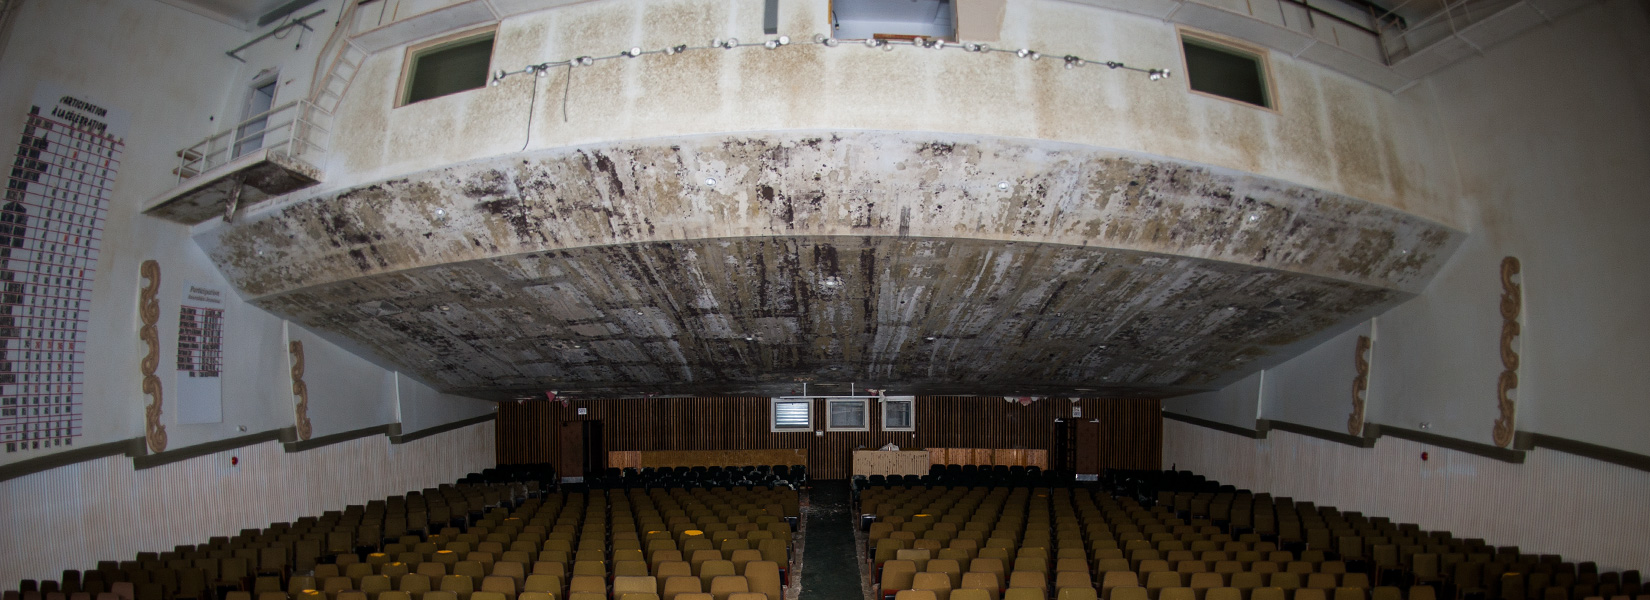 The old abandoned cinema